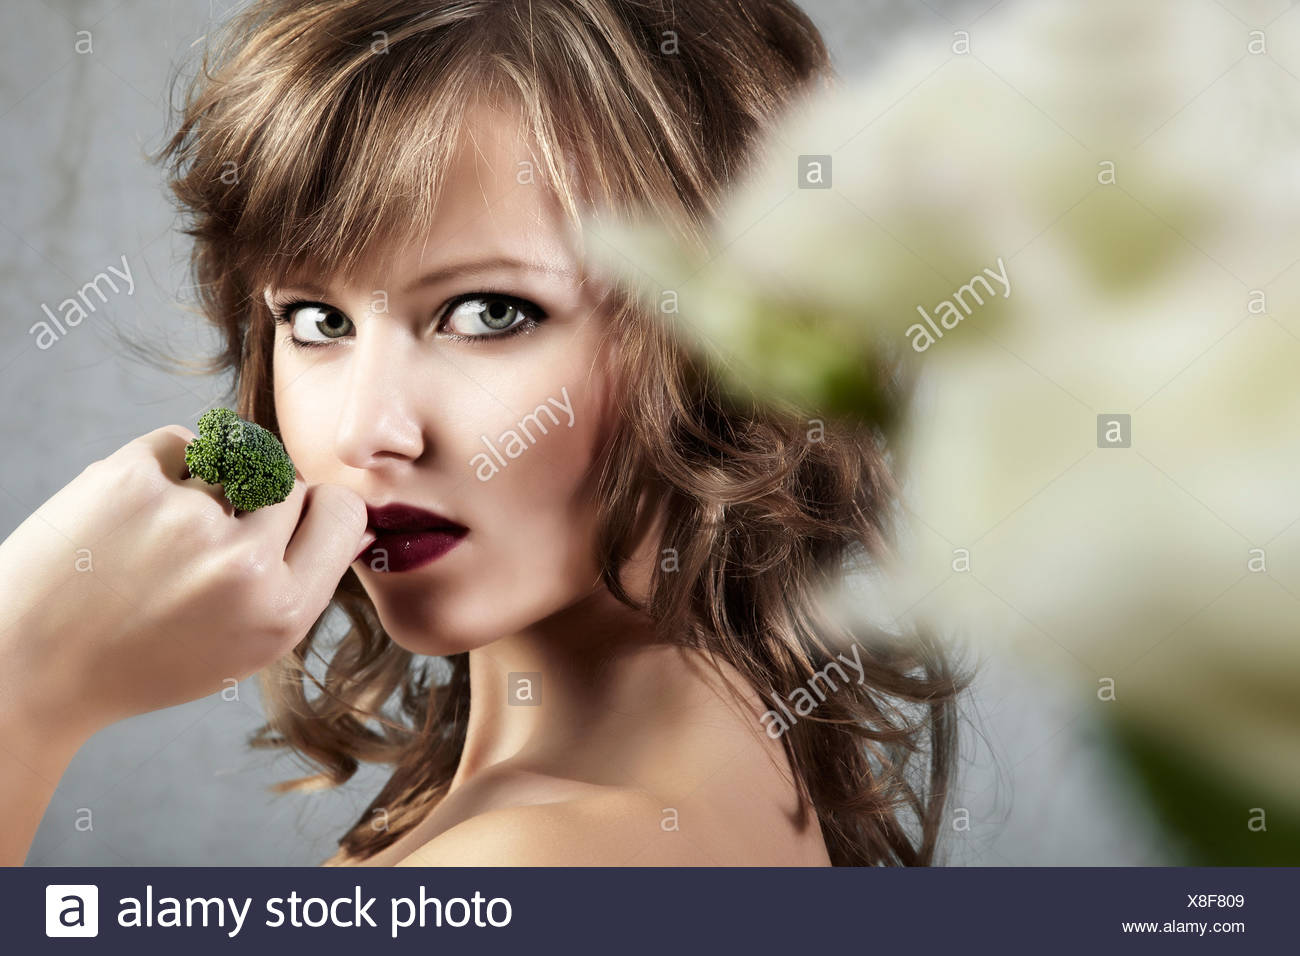 Side portrait of a young woman holding her hand with a broccoli ring seductively to her mouth, jewelry - Stock Image